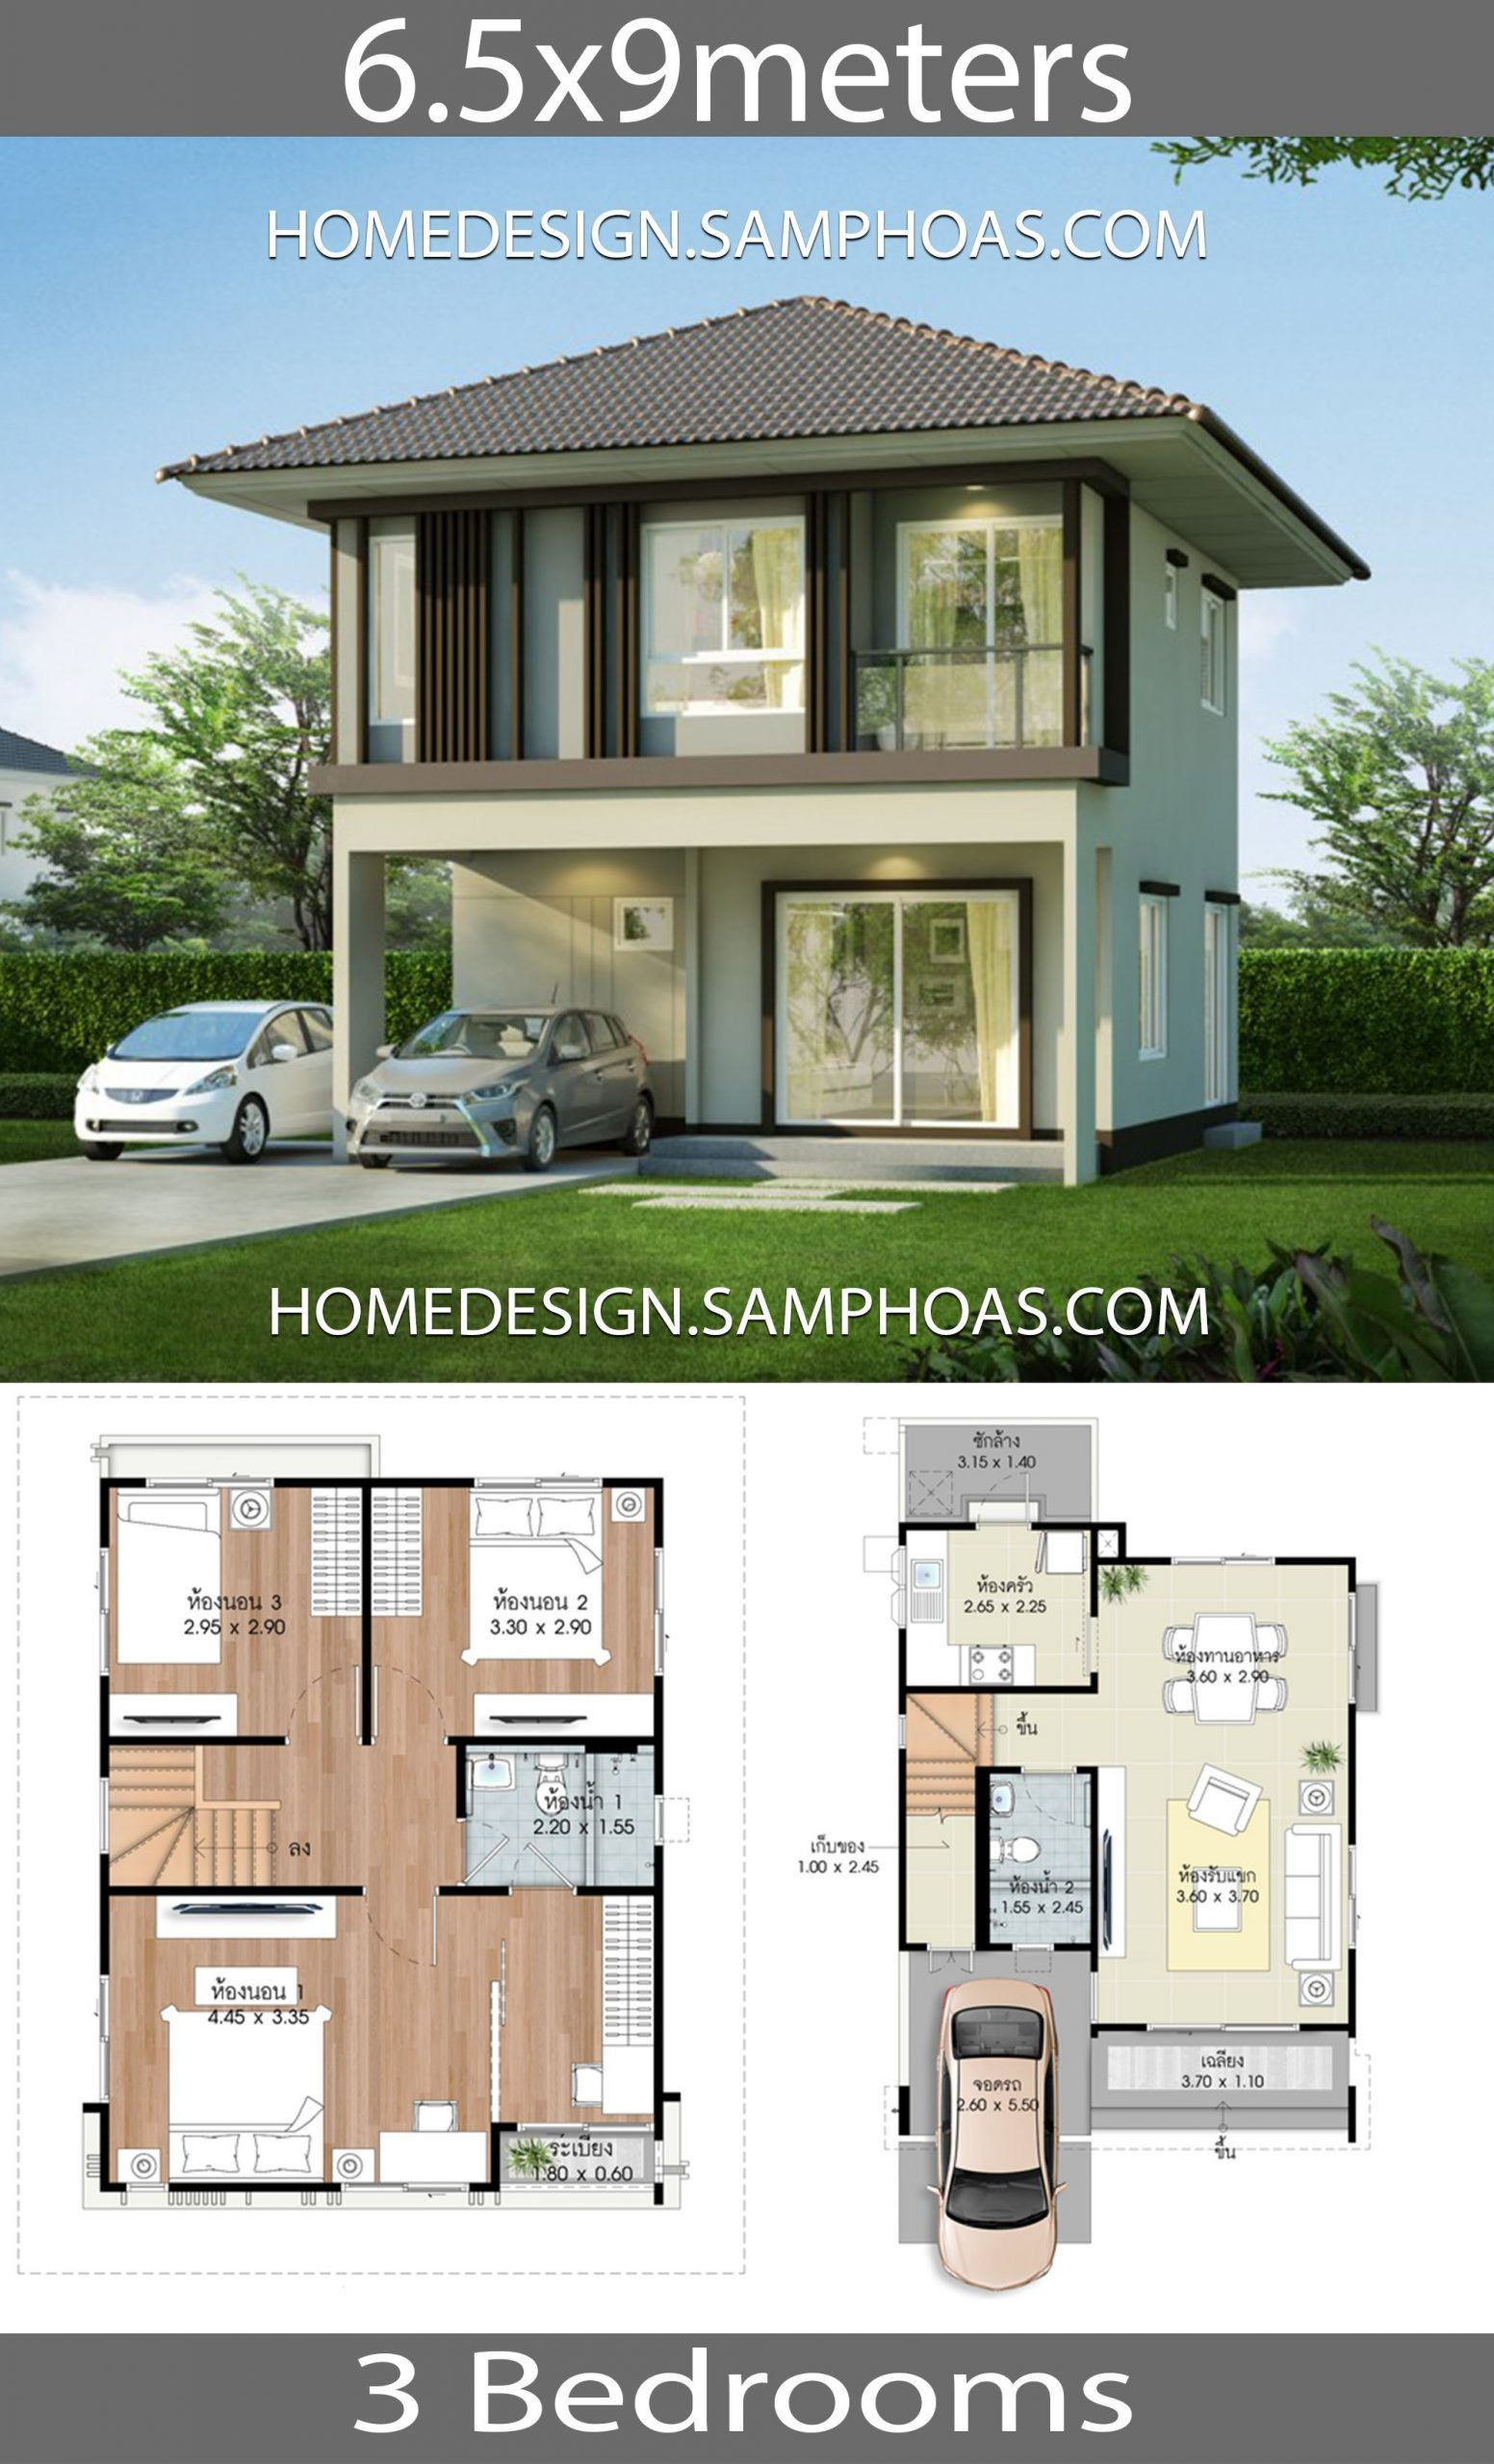 Beautiful Home Plans With Photos 2020 Planos De Casas Minimalistas Planos Para Construir Casas Casas De Dos Pisos